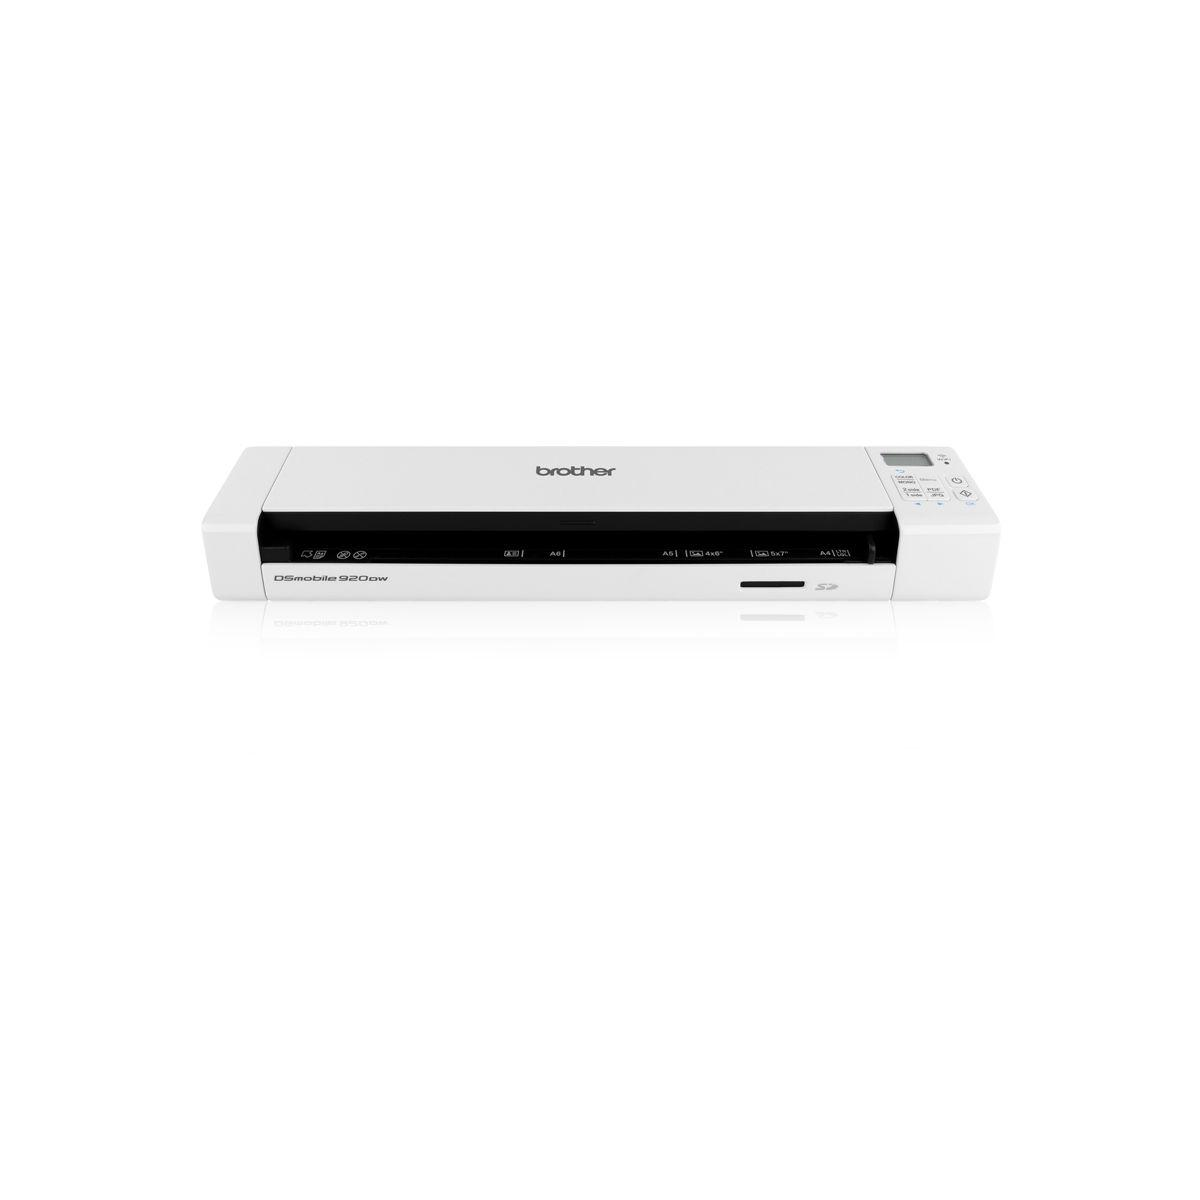 Scanner portable brother ds-920dw (photo)